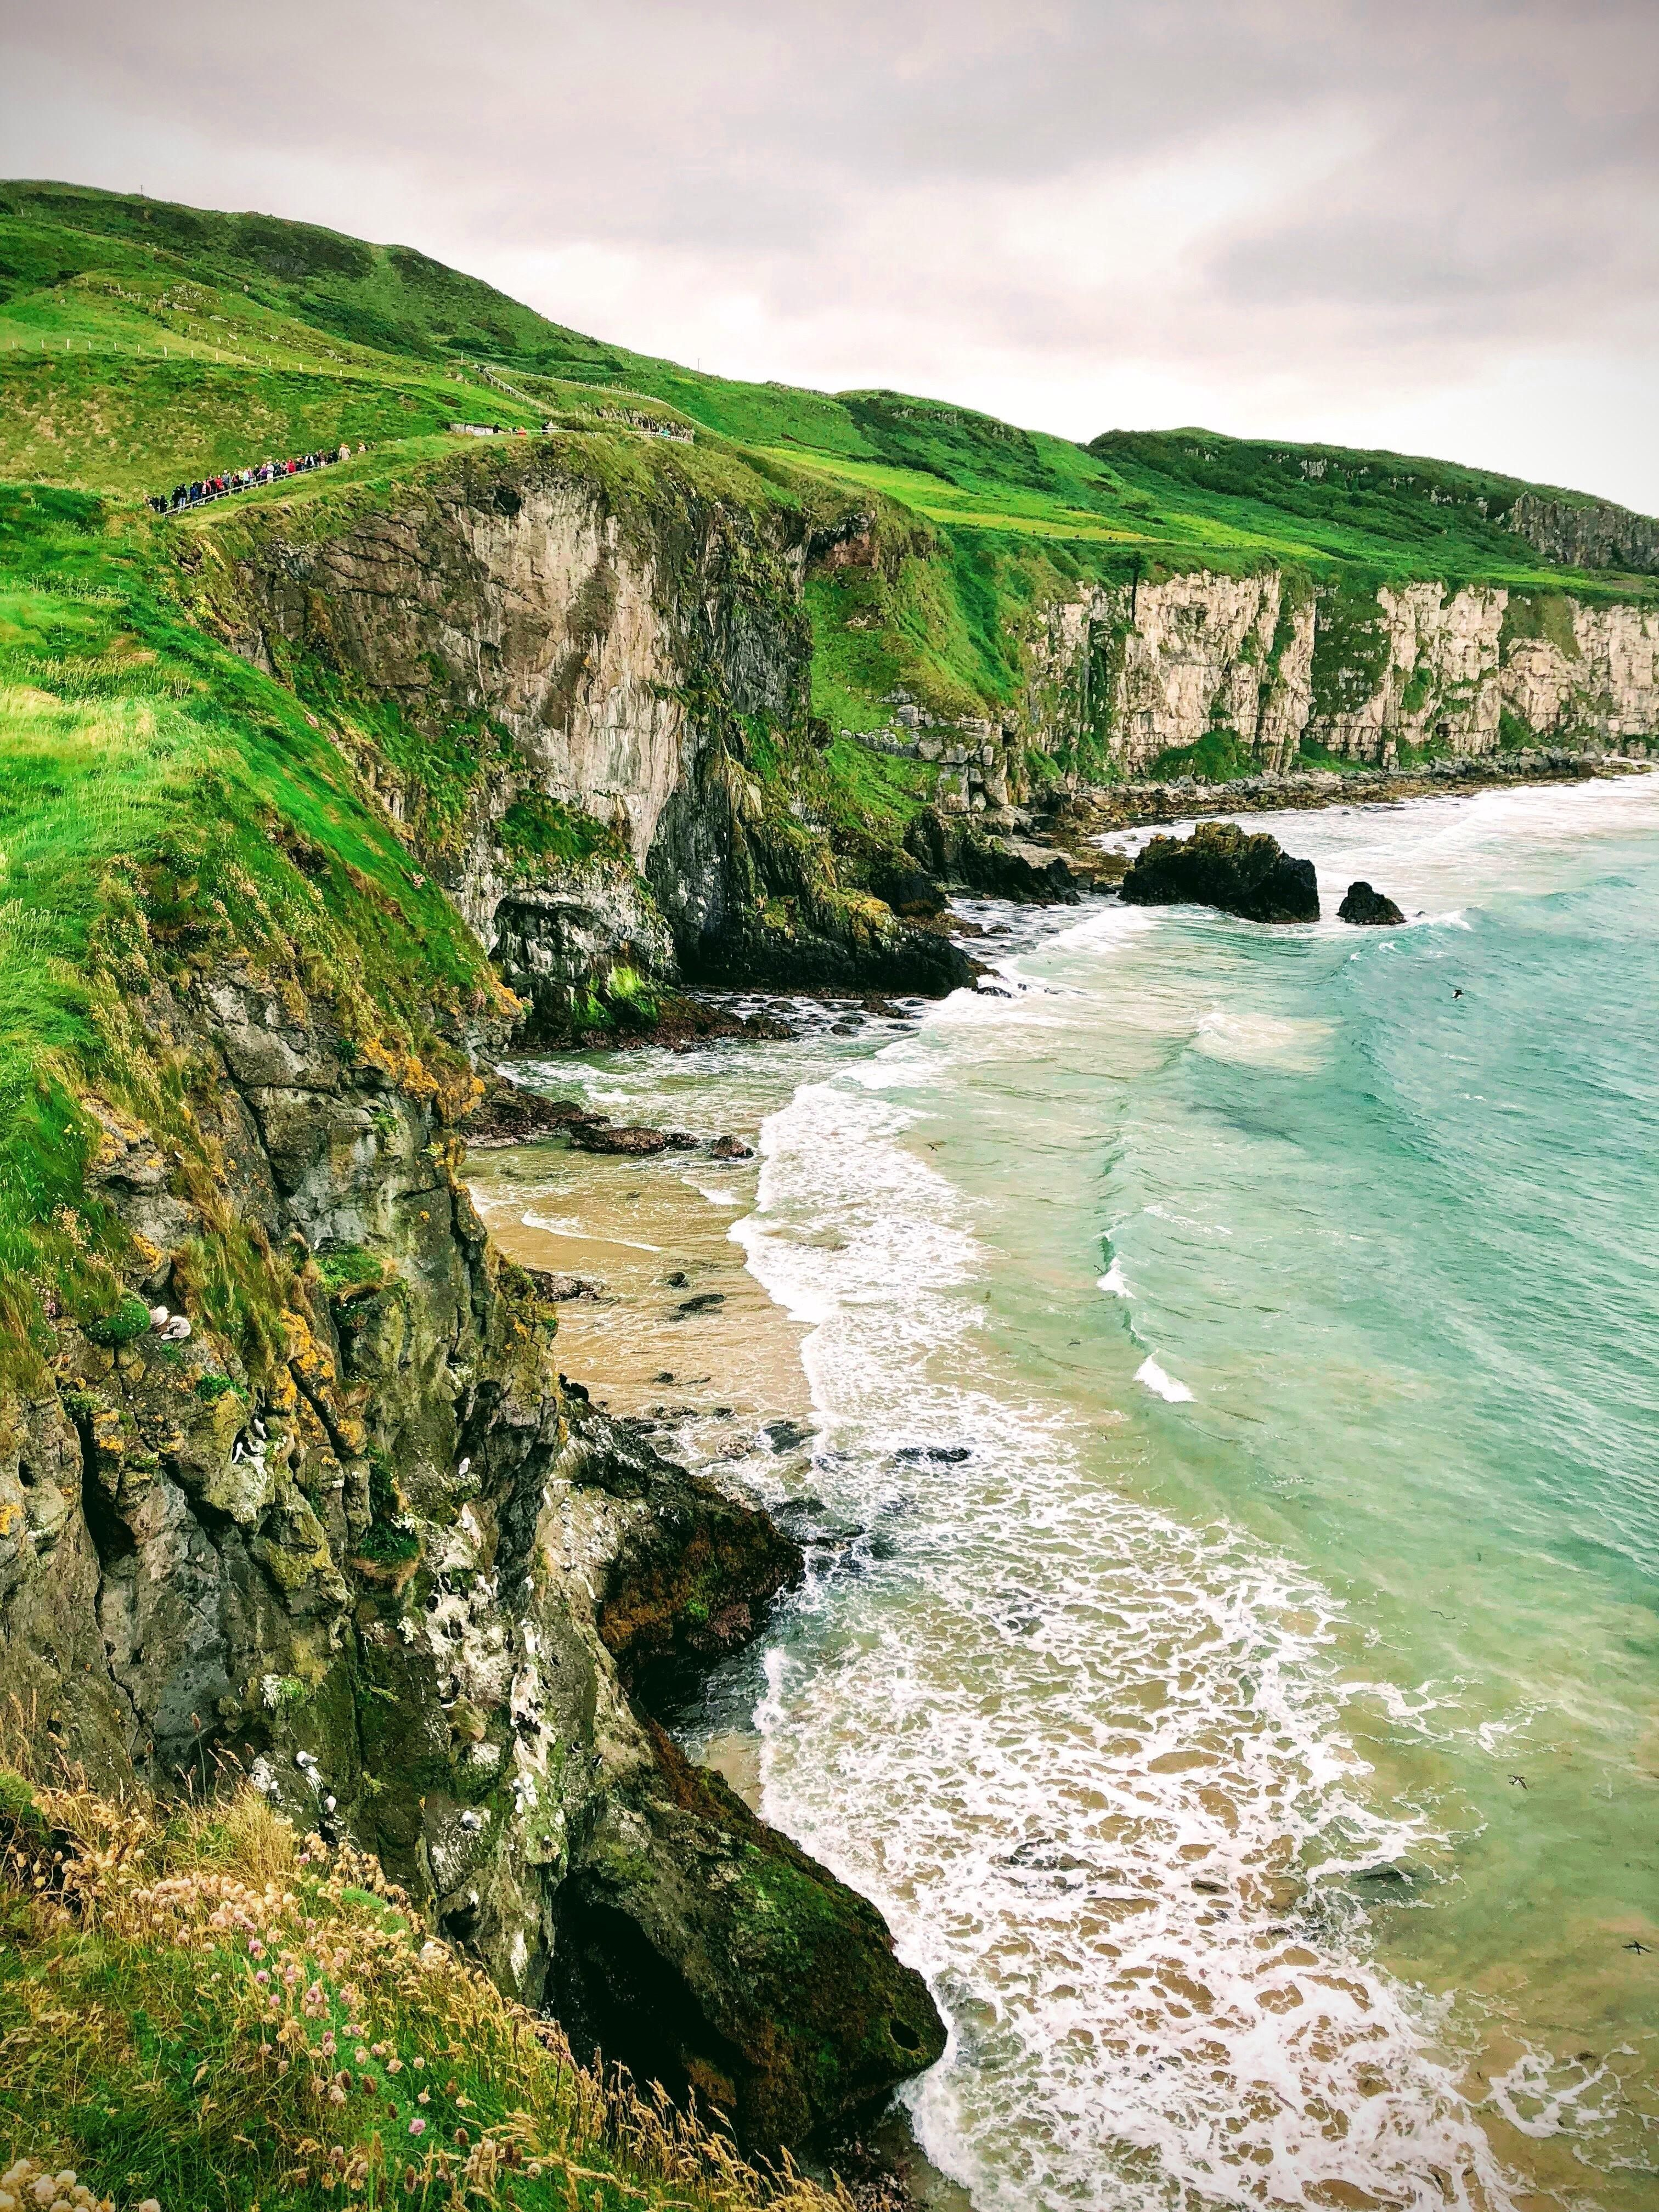 Fell in love with the Northern Ireland landscape this ...